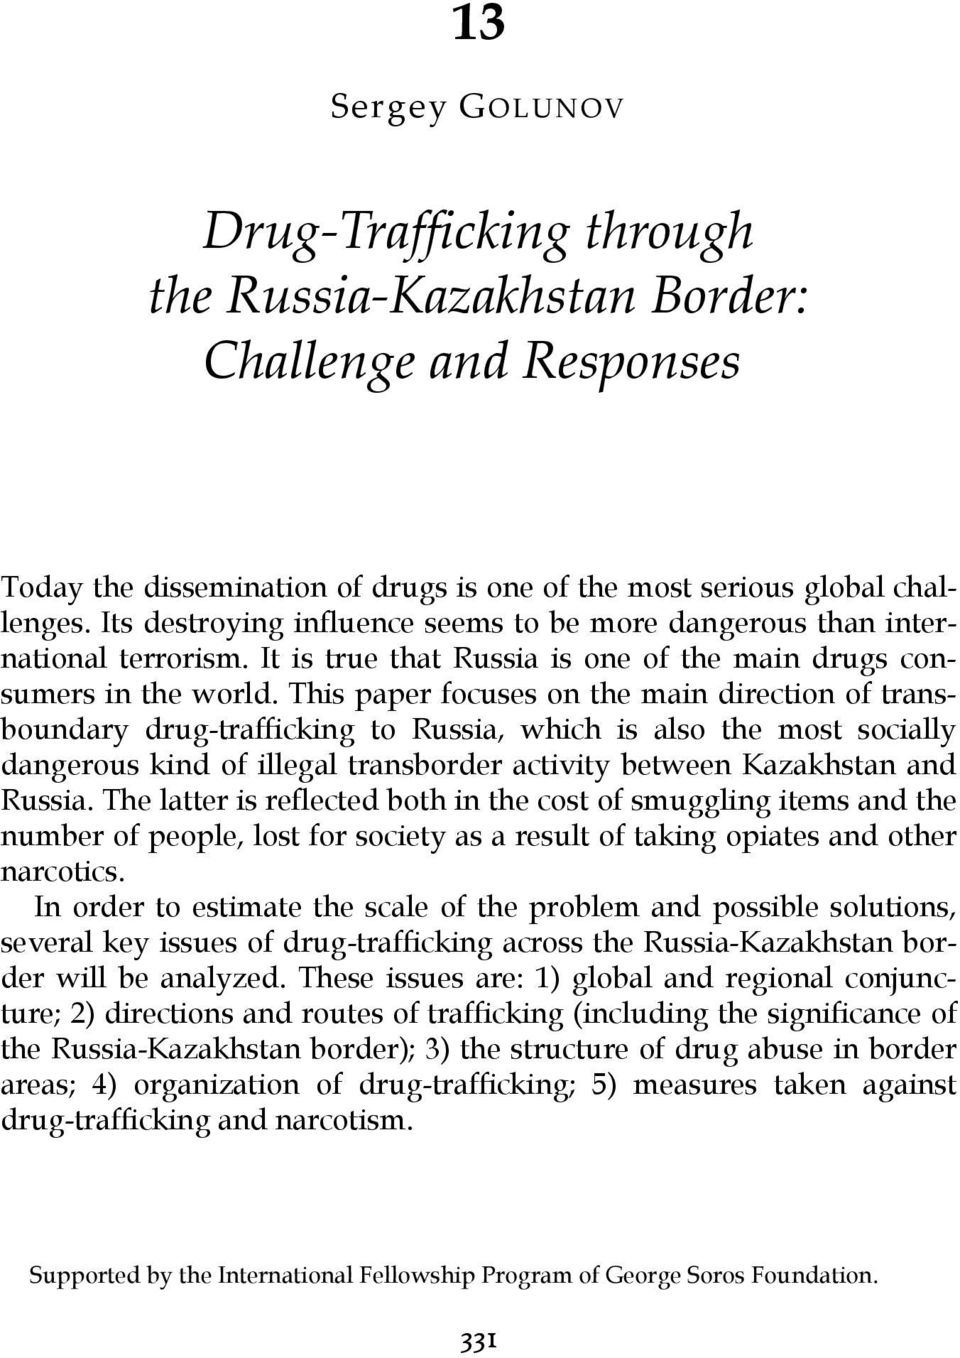 This paper focuses on the main direction of transboundary drug-trafficking to Russia, which is also the most socially dangerous kind of illegal transborder activity between Kazakhstan and Russia.